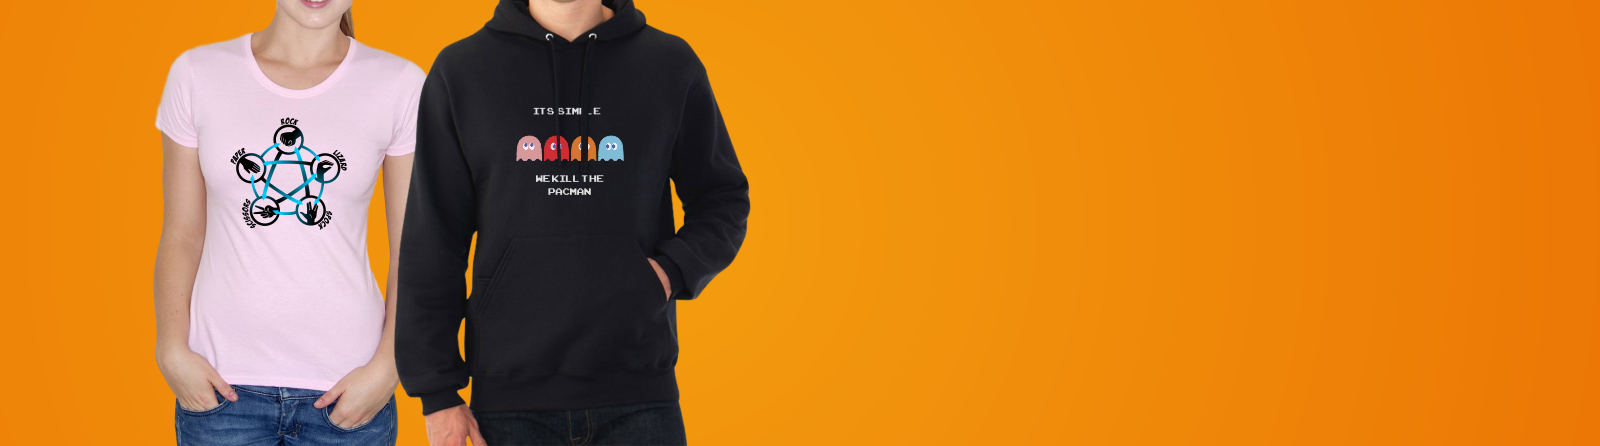 hoodie and tee special